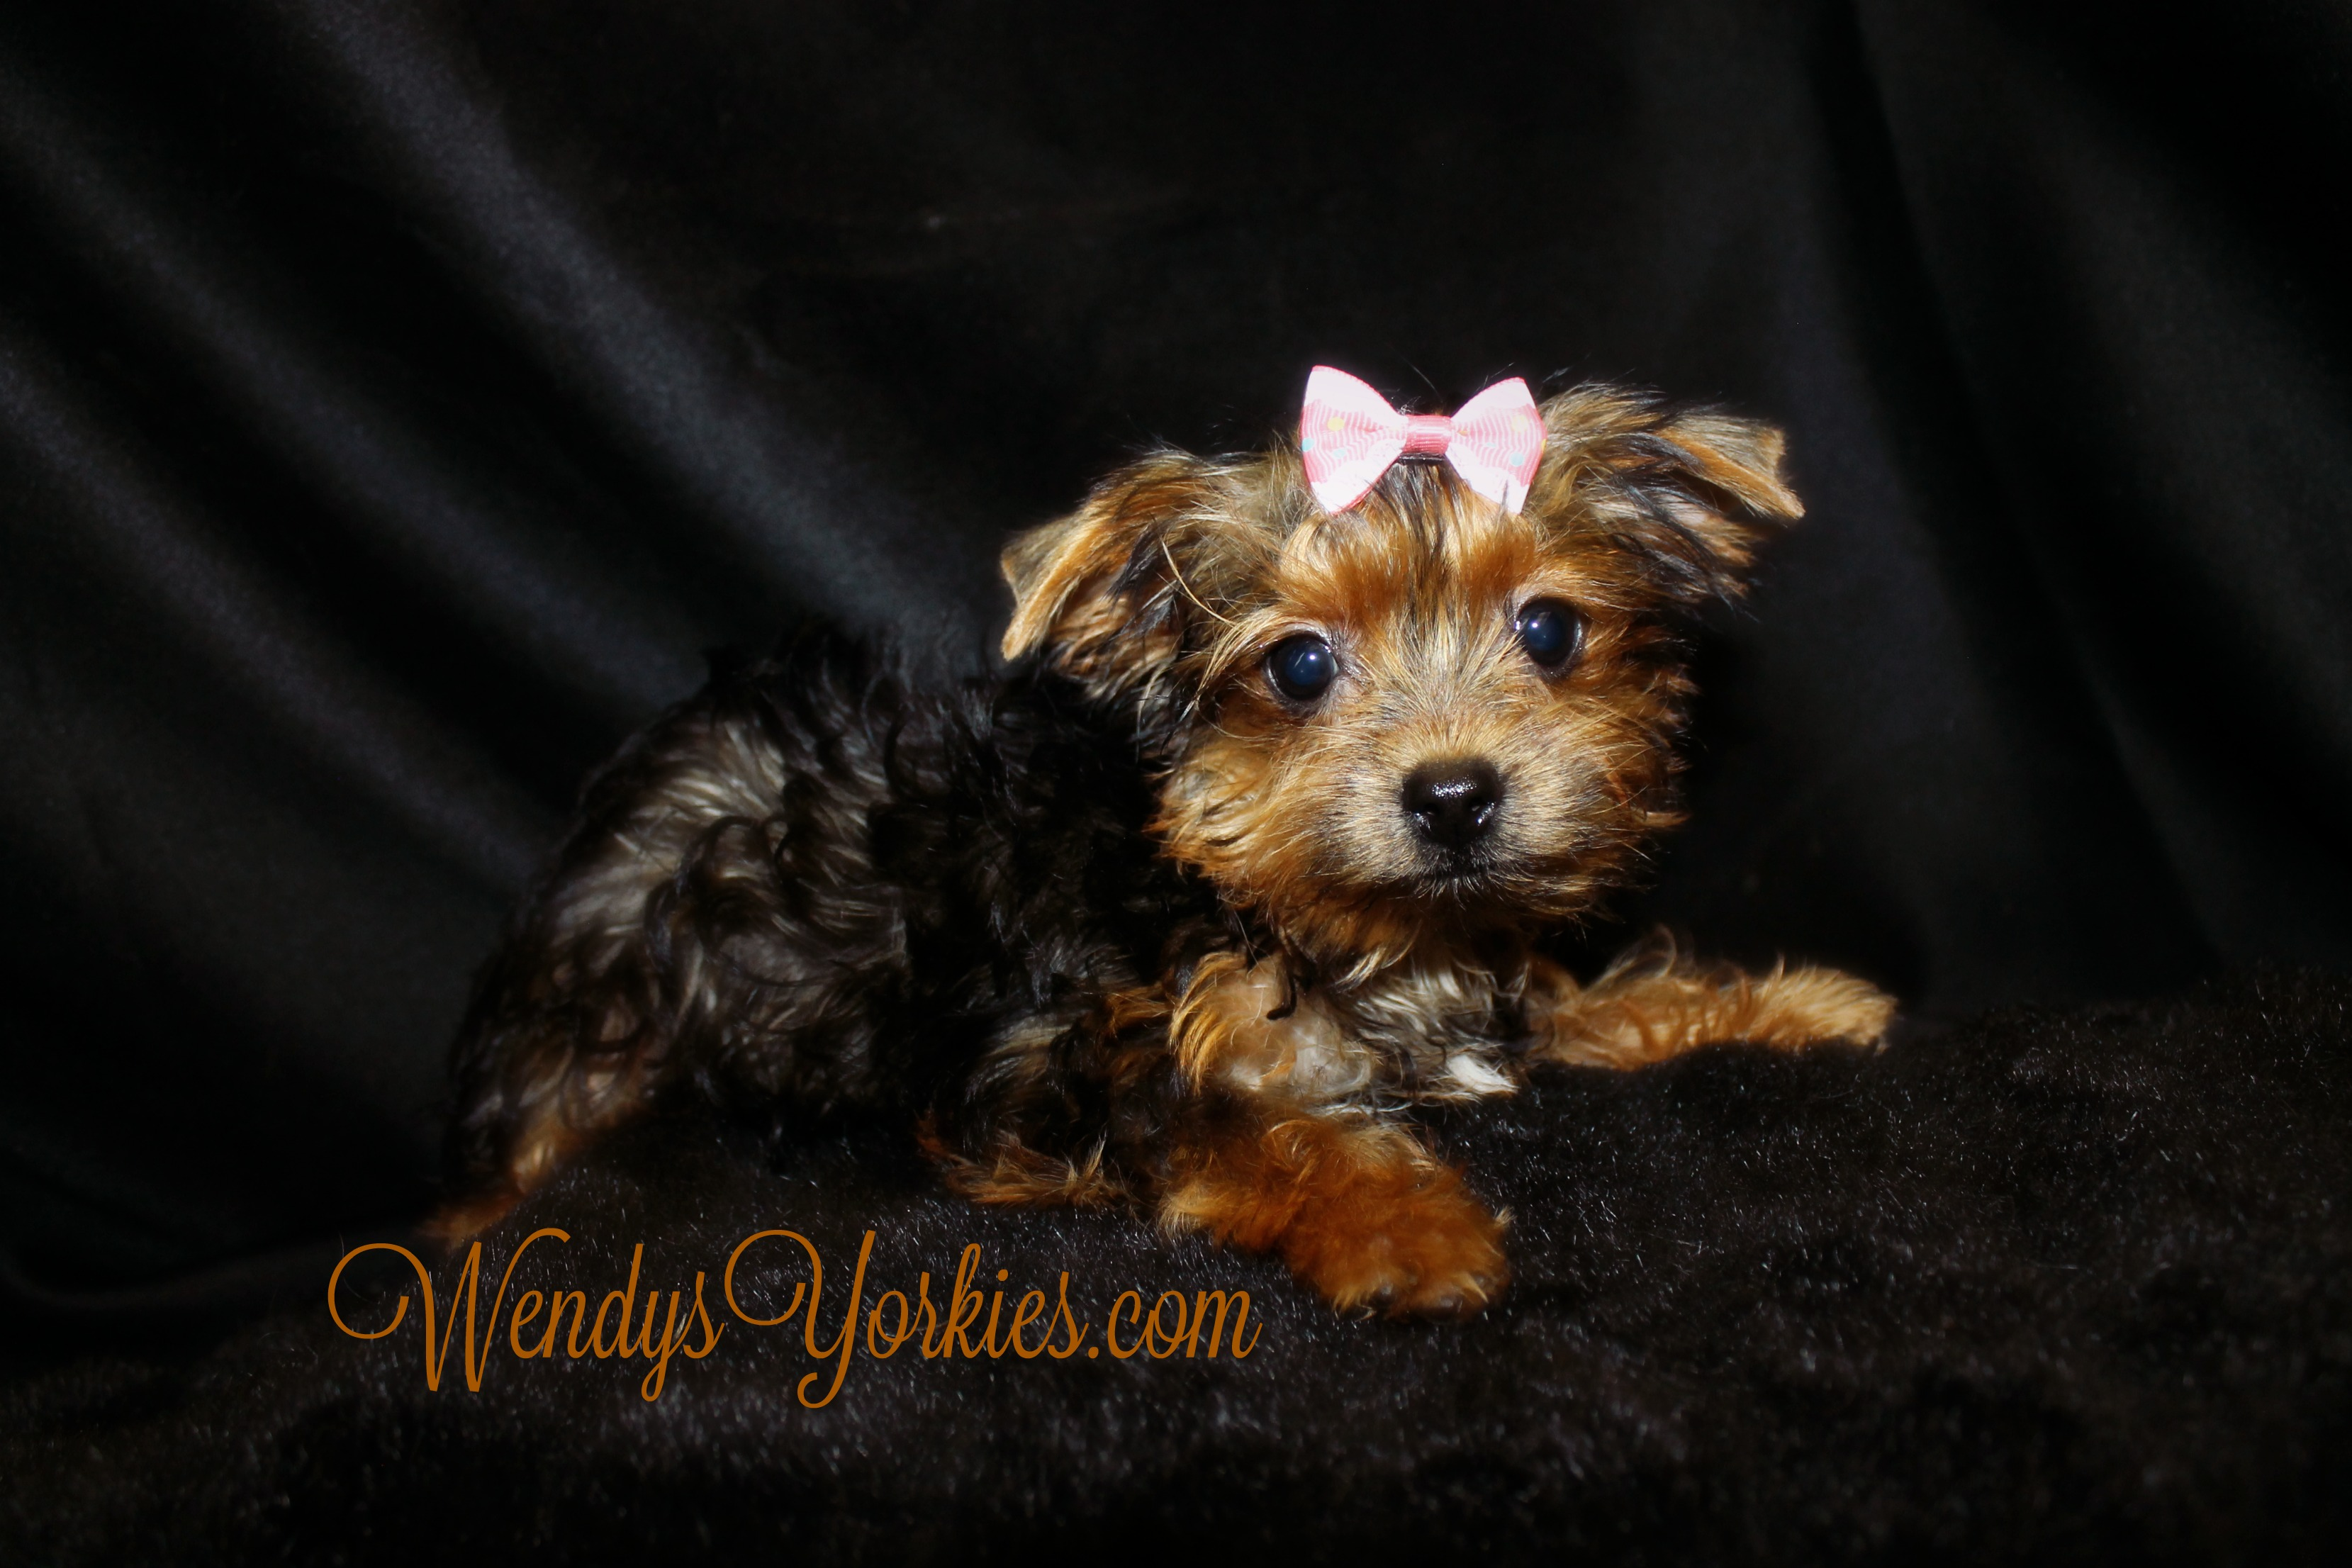 Tiny Teacup Female Yorkie puppy for sale, WendysYorkies.com, Phoebebitty